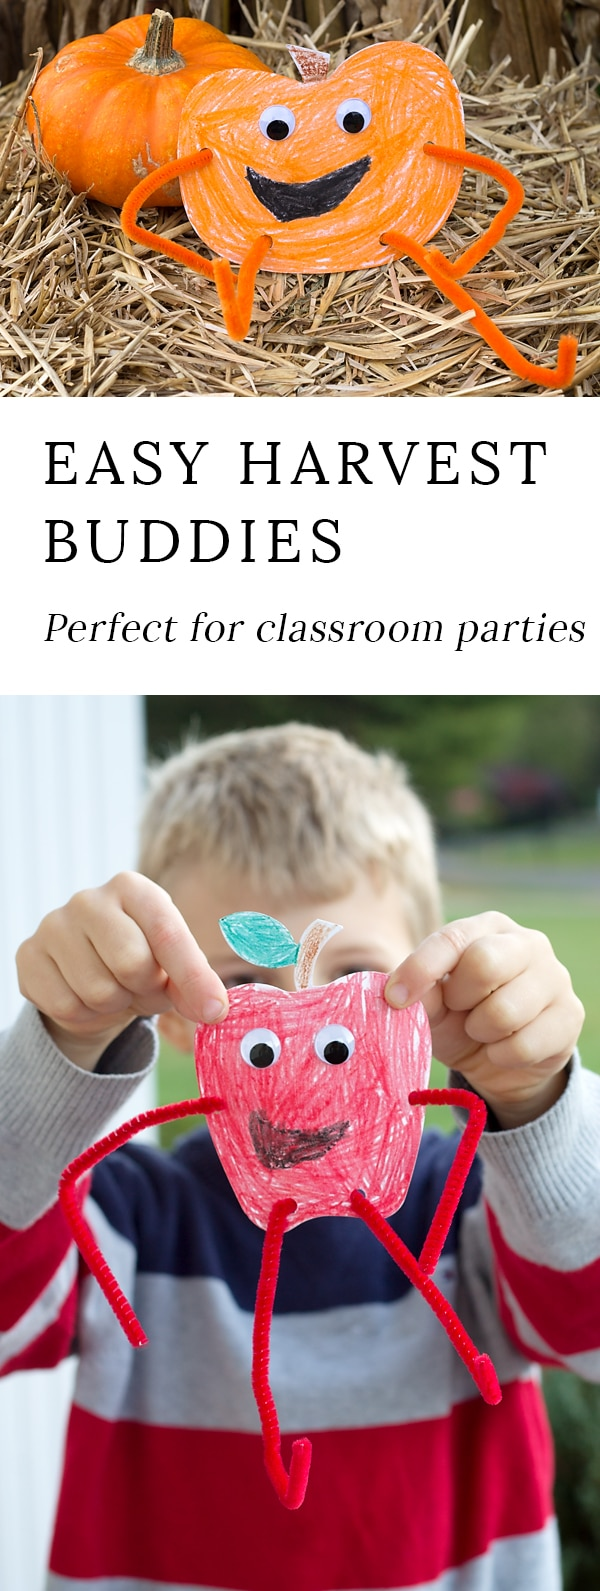 Fall Harvest Buddies are an easy and fun printable craft for kids of all ages! This craft is perfect for classroom parties or lazy crafternoons at home. #fallcrafts #harvestbuddies #pumpkin #crafts via @firefliesandmudpies